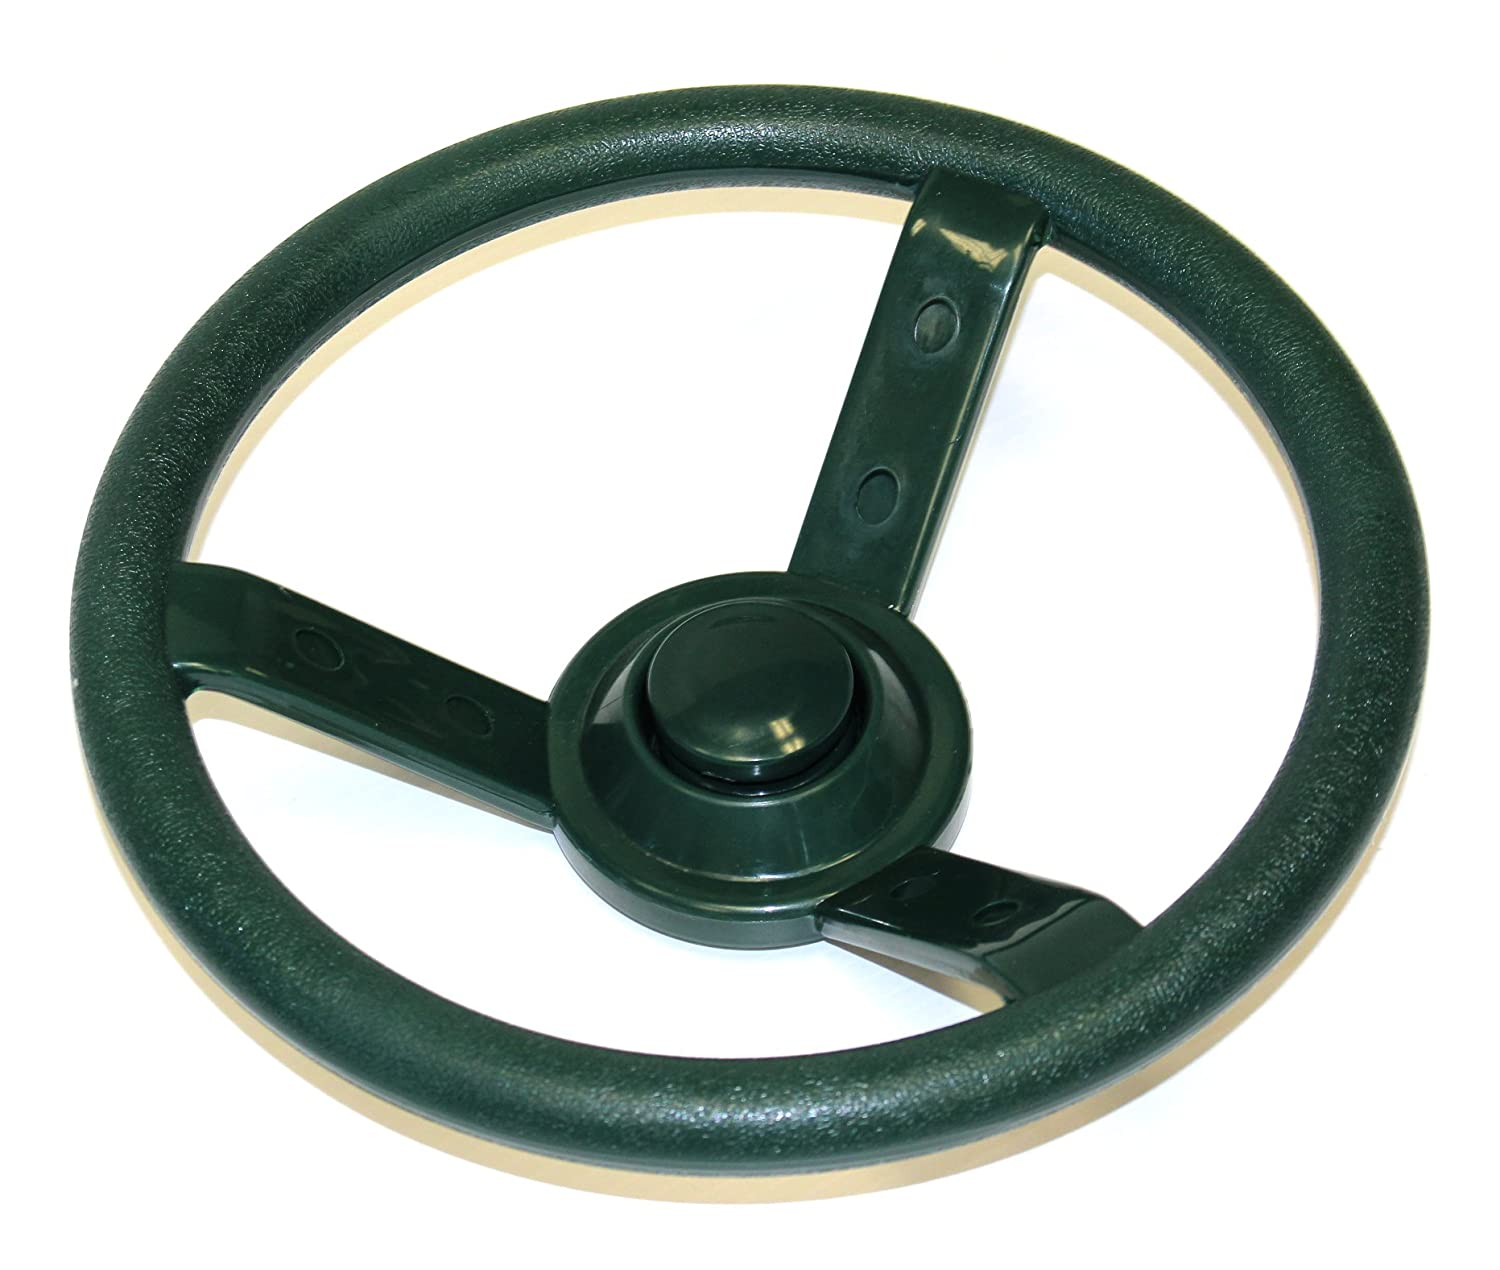 Eastern Jungle Gym Green Plastic Steering Wheel Swing Set Accessory for Wood Backyard Play Set